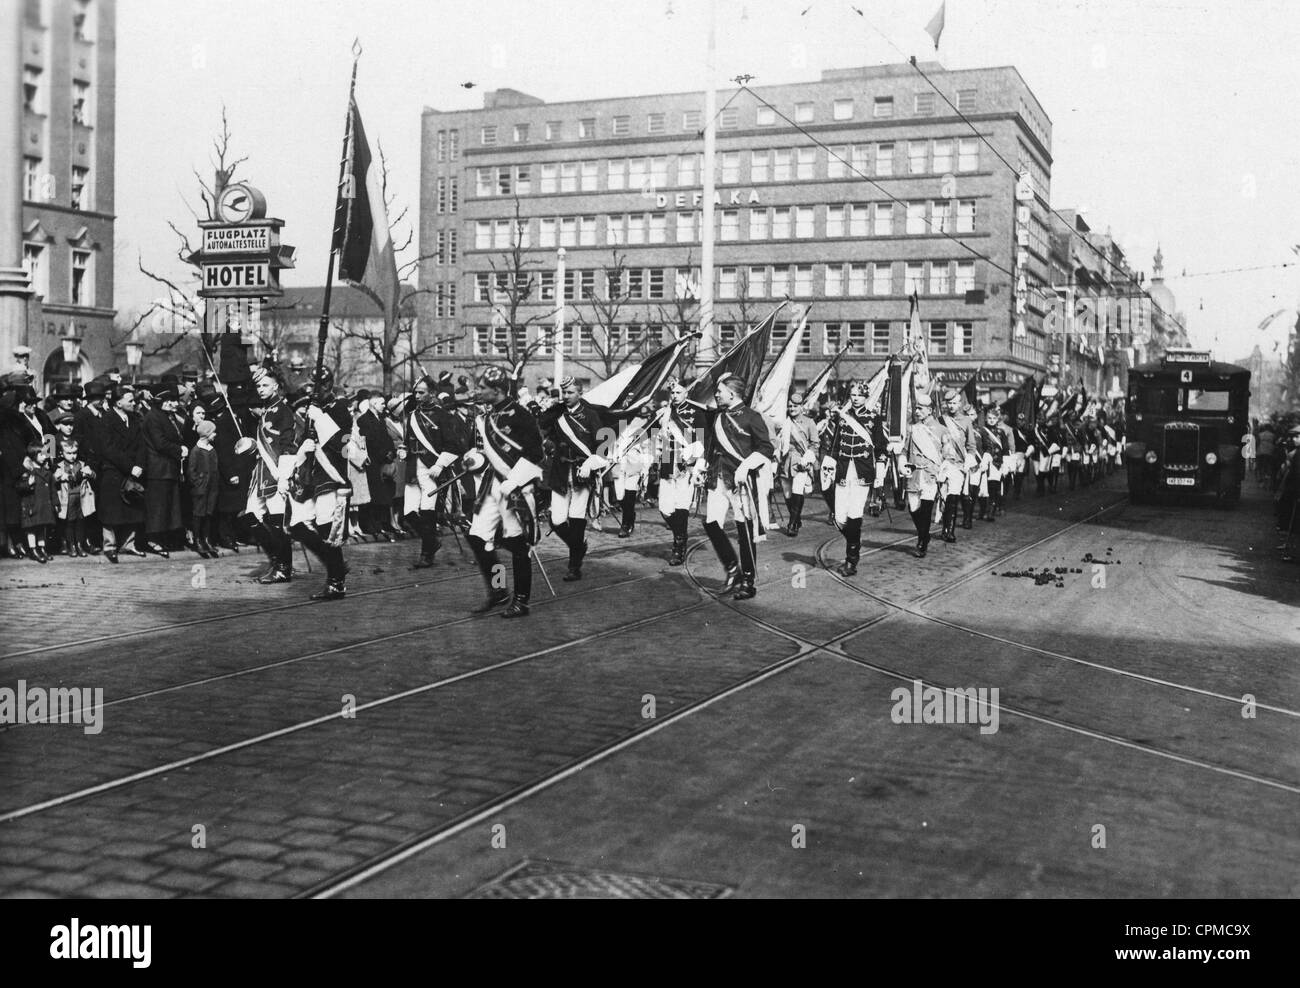 Ceremony commemorating the plebiscite which decided for Upper Silesia to remain within Germany, Gleiwitz, Upper - Stock Image